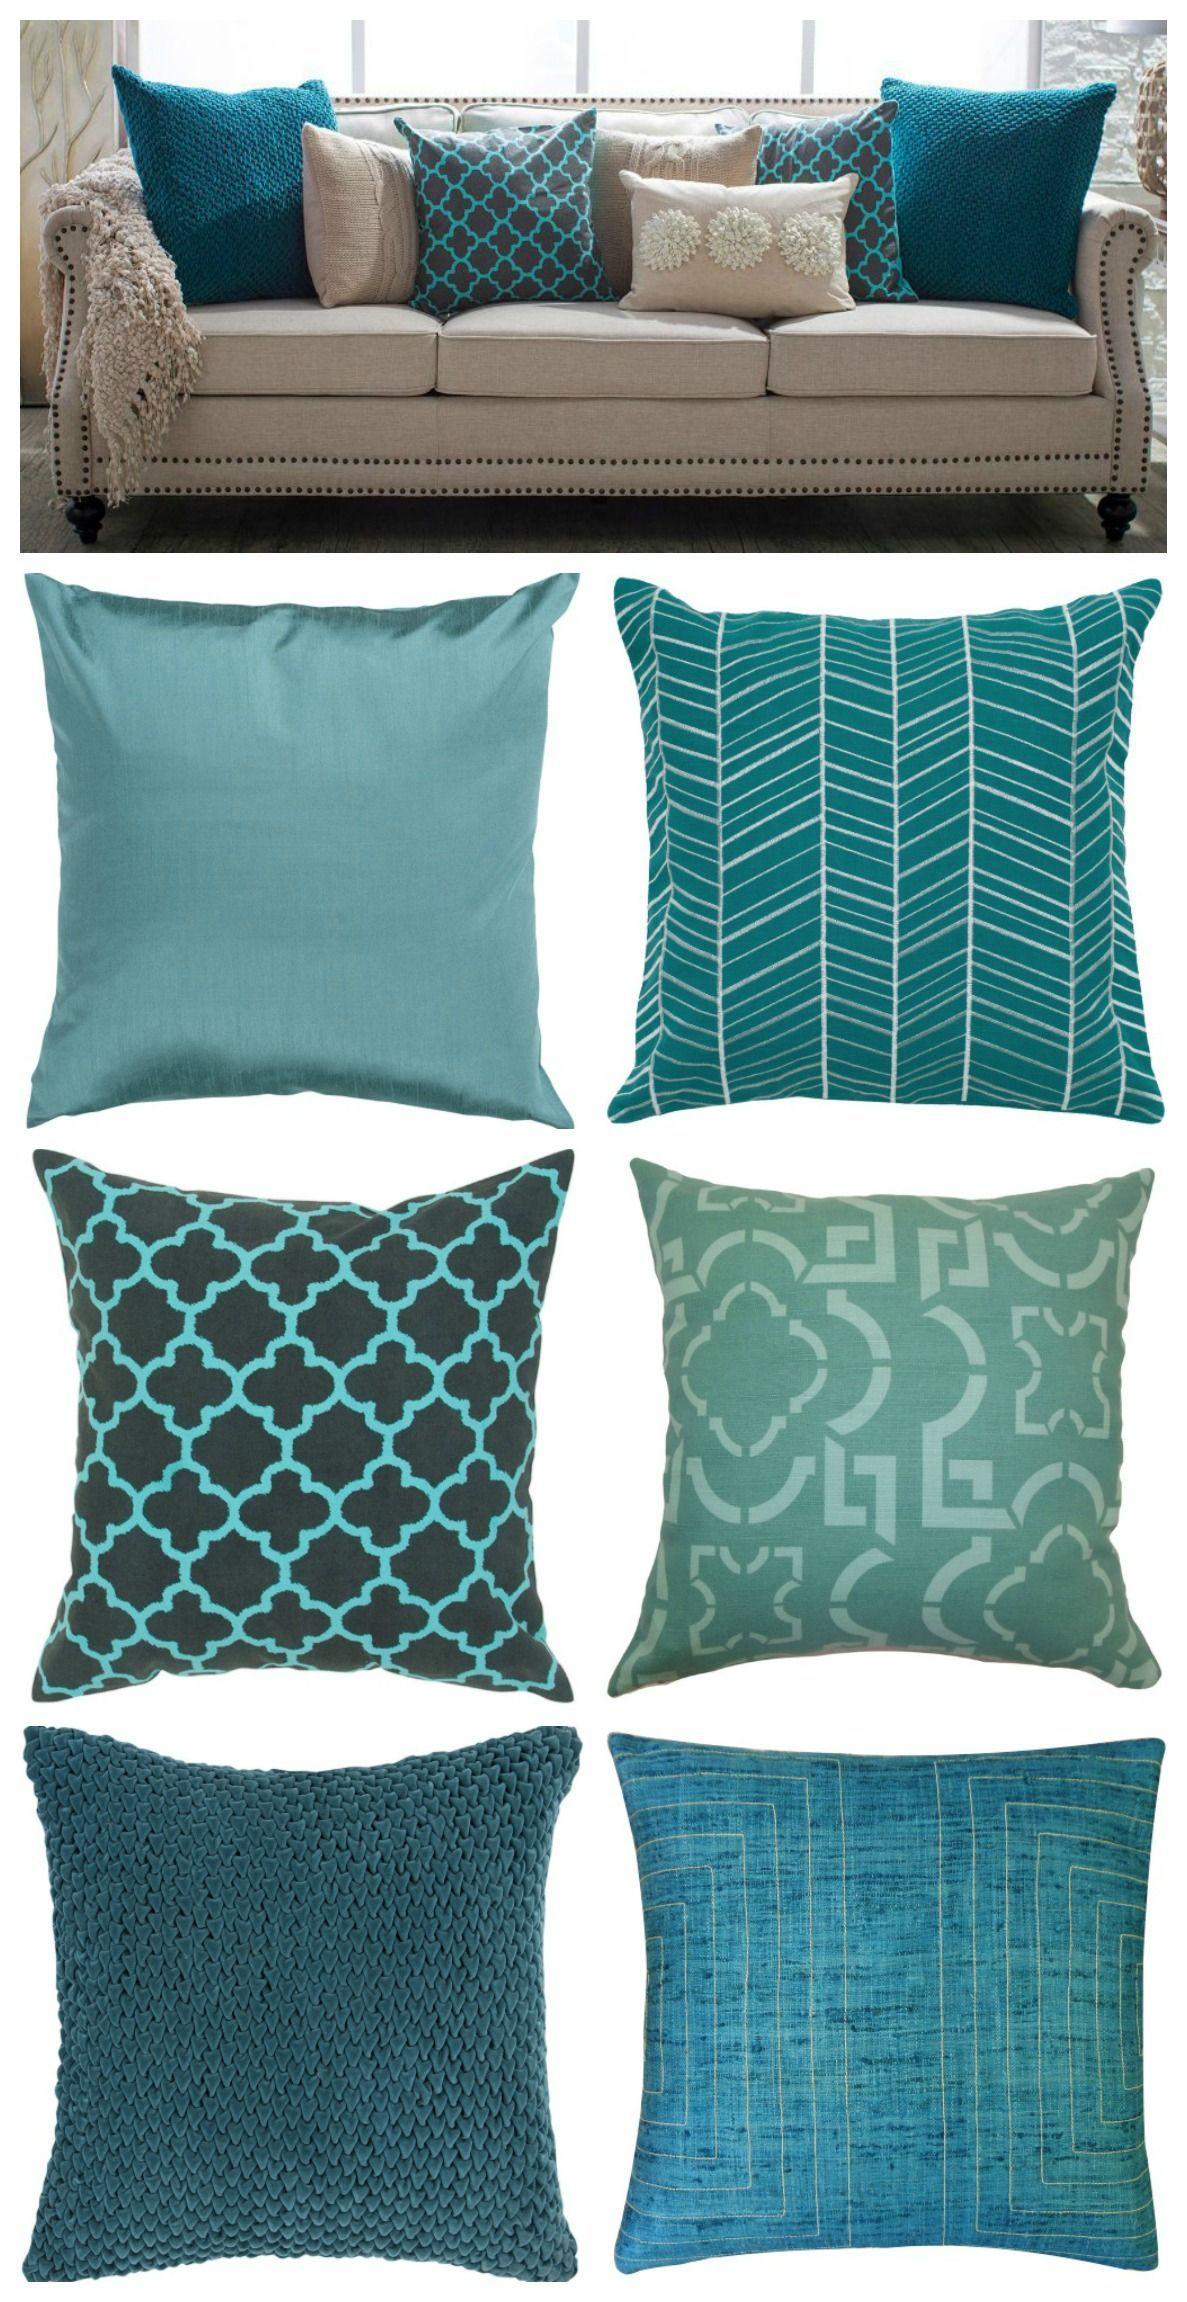 5 Mind Blowing Cool Tips Decorative Pillows Blue Grey Decorative Pillows Bohemian Textiles Decorat Teal Living Rooms Living Room Turquoise Living Room Pillows Turquoise throw pillows for couch